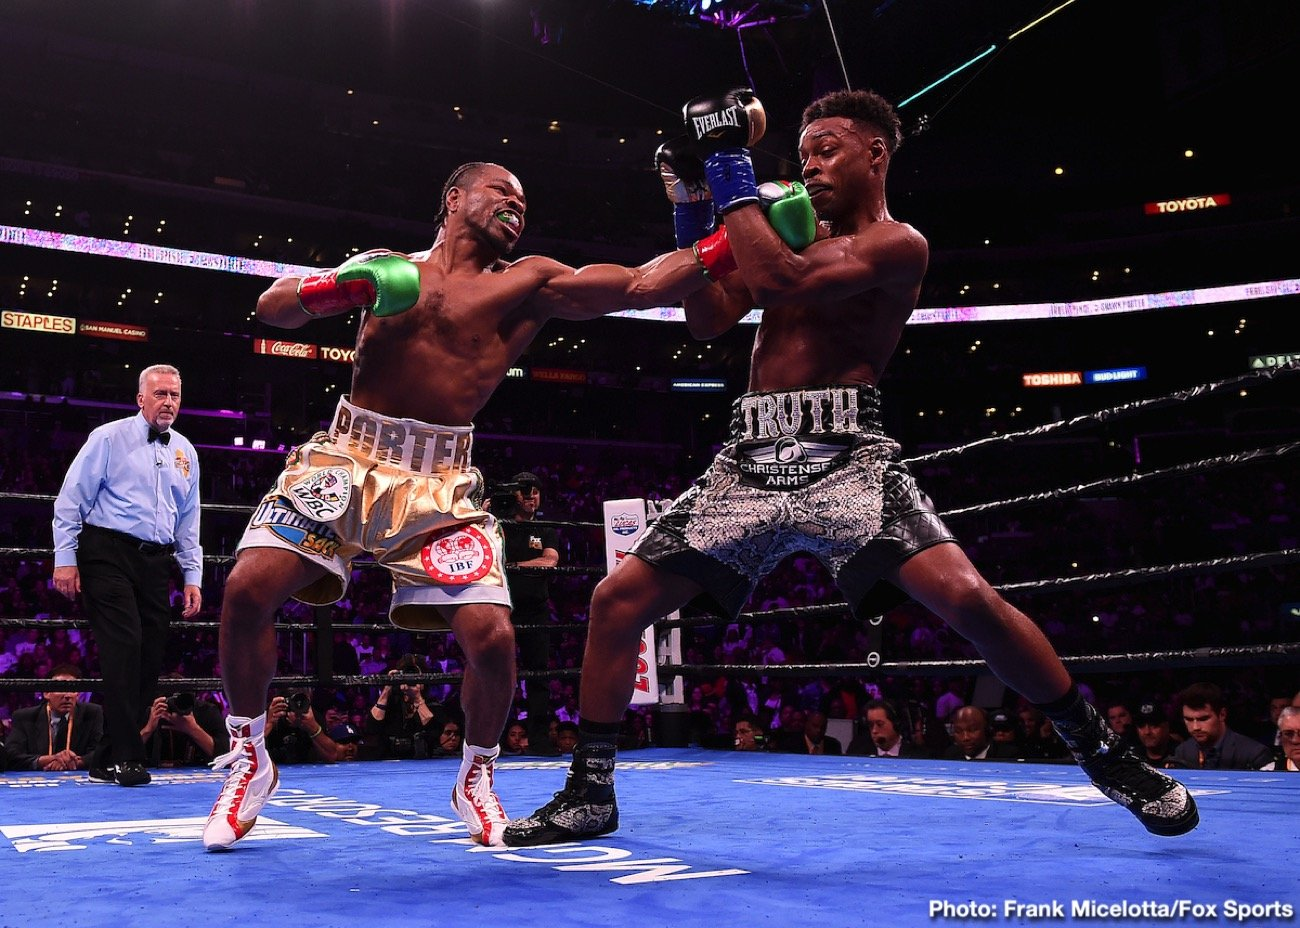 Fight fans knew they were in for a good fight last night, as rival welterweight champions Errol Spence and Shawn Porter collided in a unification showdown. What they got was a great fight, perhaps The Fight of The Year. Spence added the WBC crown to his IBF title by way of a gruelling, often thrilling decision win, in doing so coming through the single hardest fight of his career.